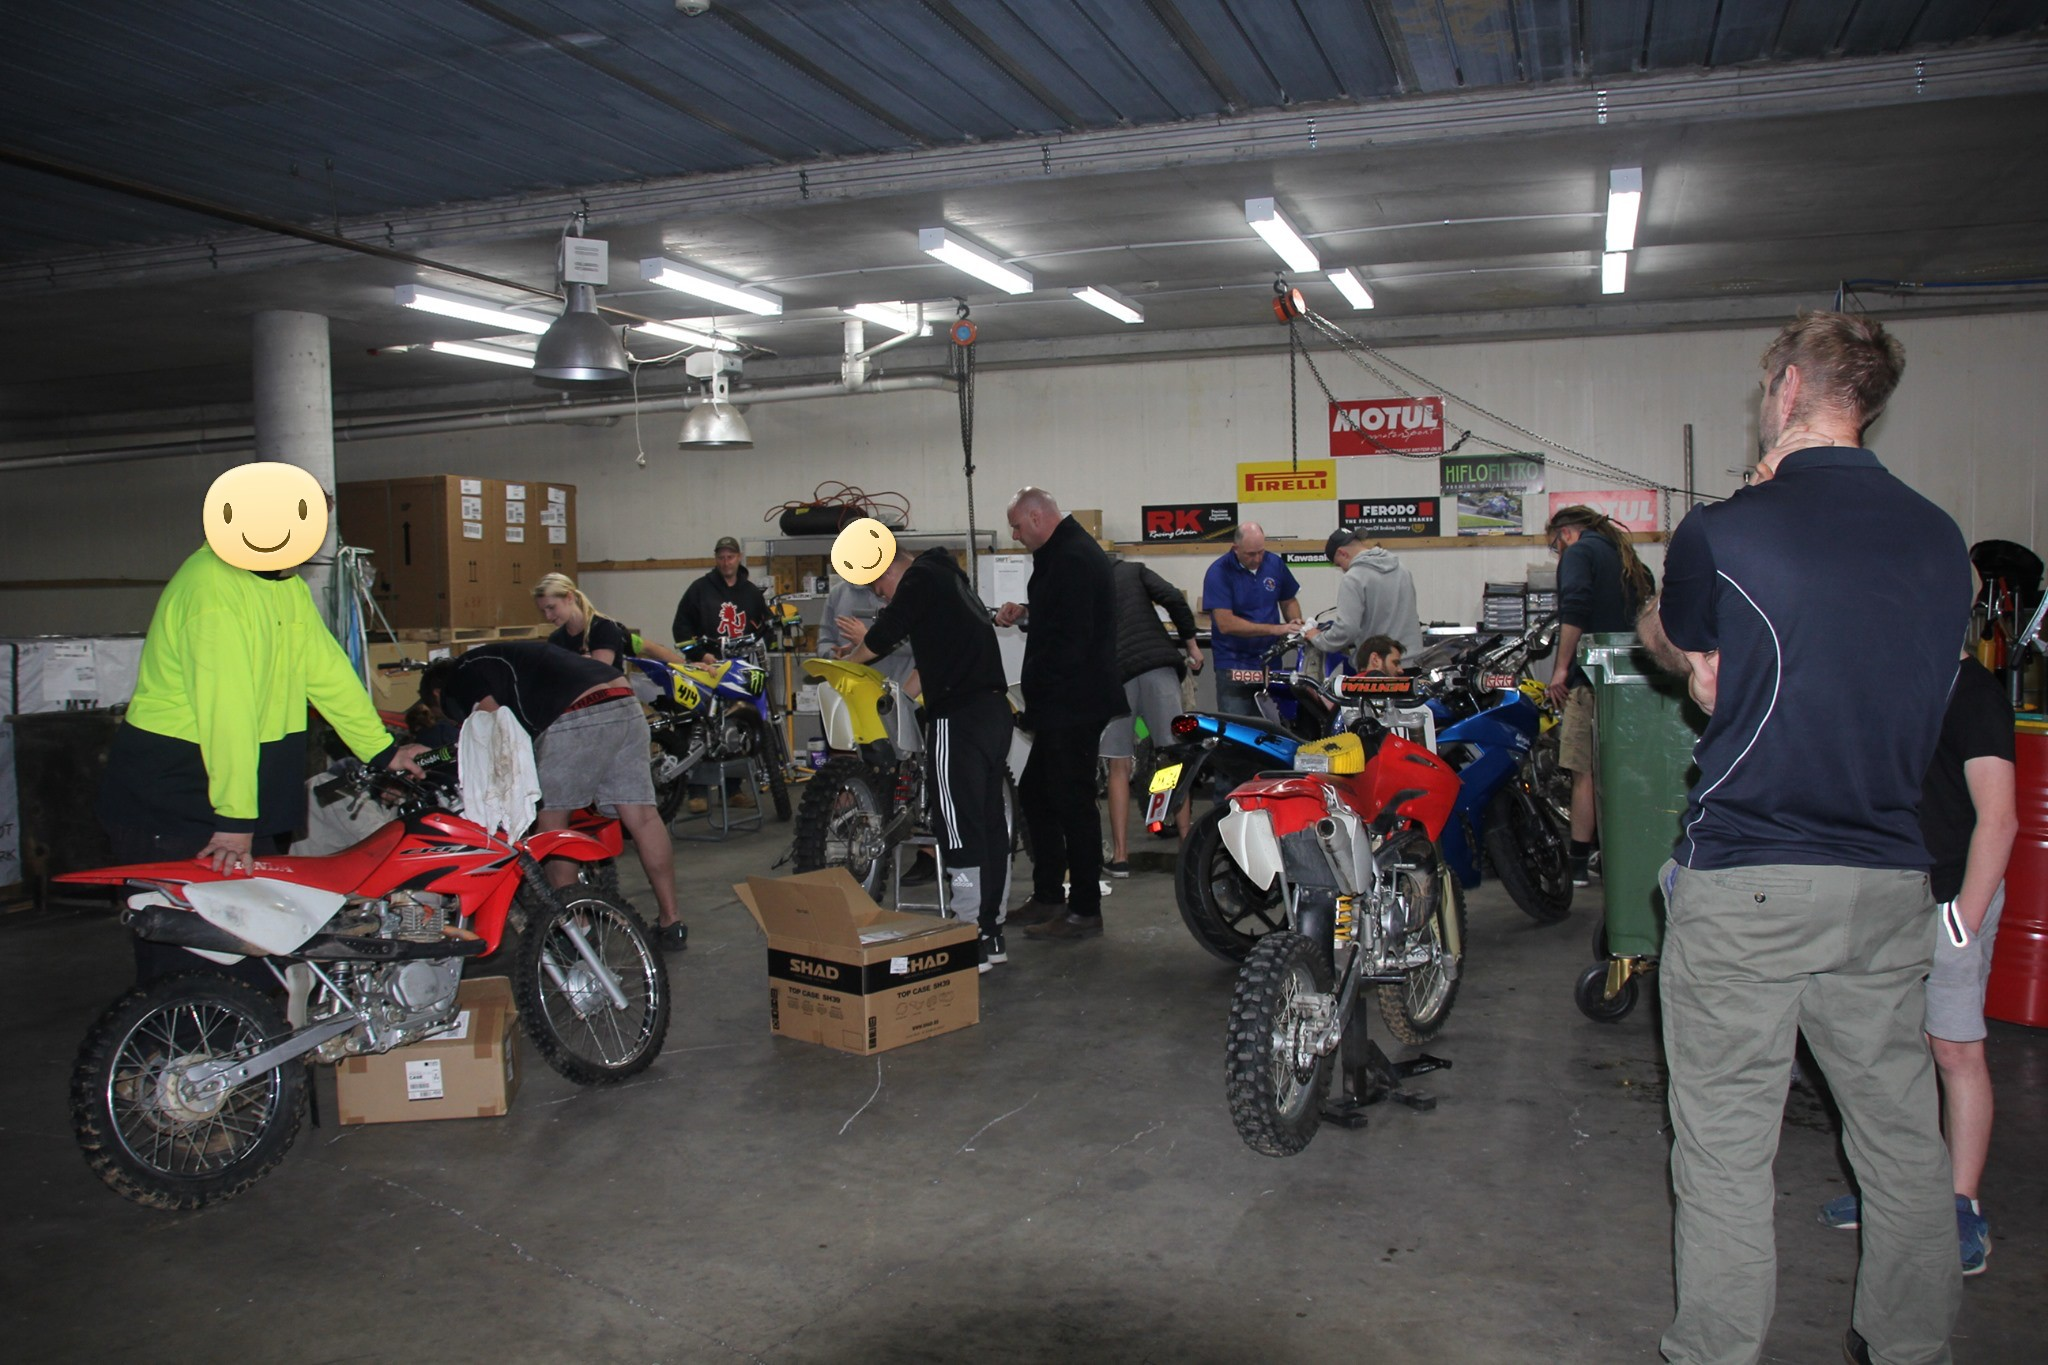 Work Experience Trial Program thanks to the support of Canberra Motorcycle Centre